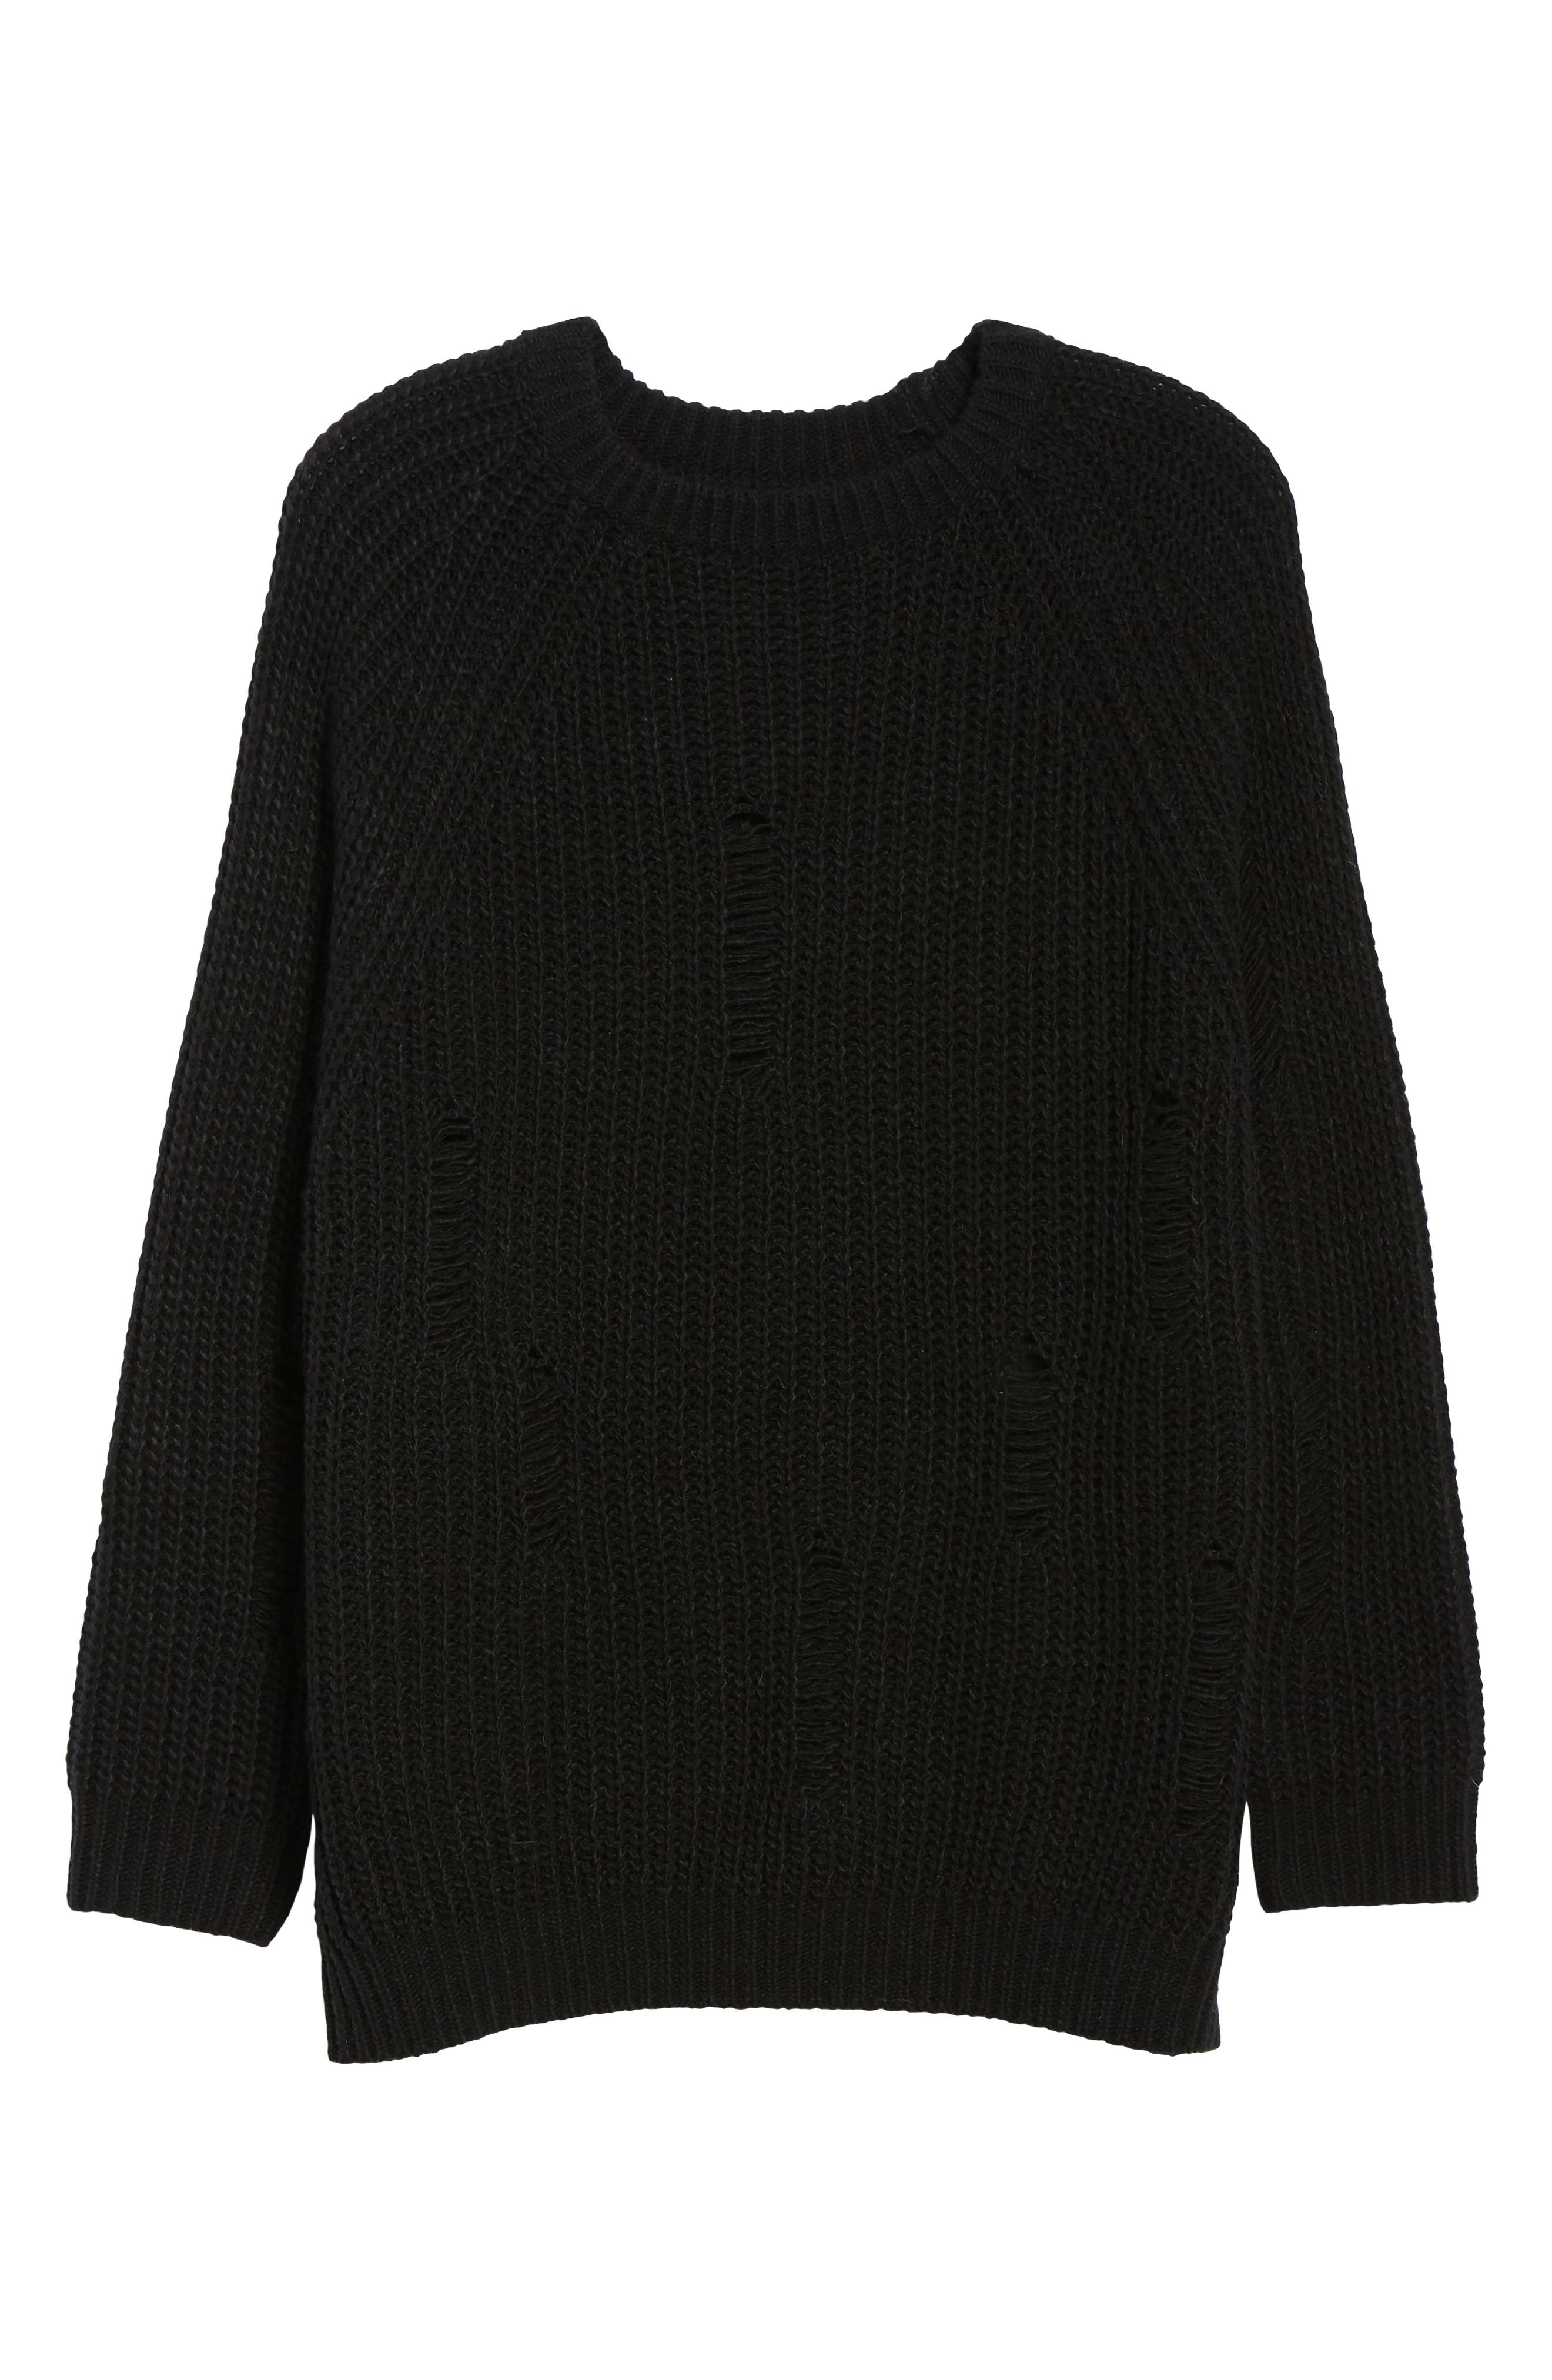 Bishop + Young Simone Distressed Shaker Sweater,                             Alternate thumbnail 6, color,                             BLACK